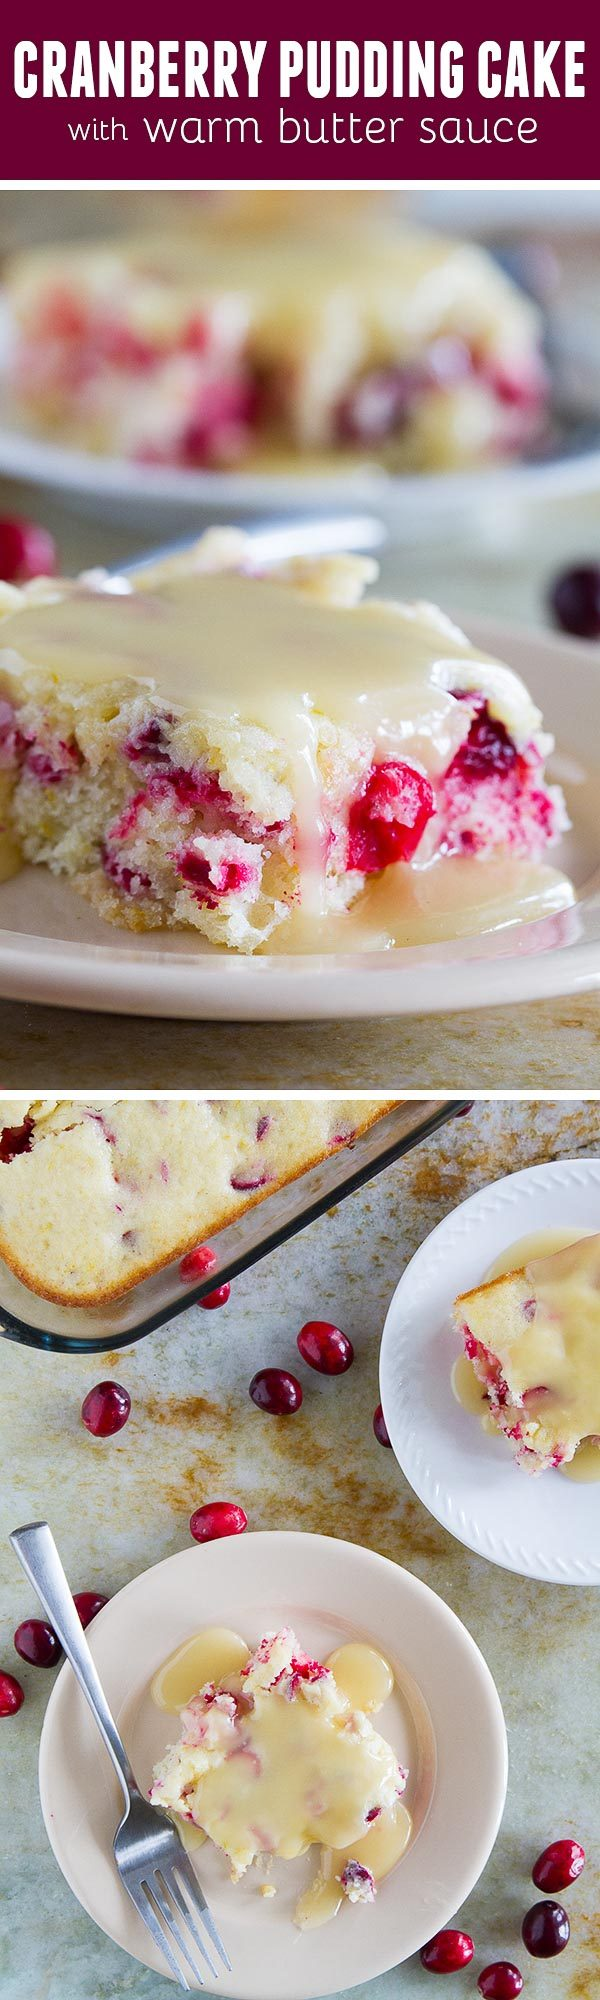 Simple and rustic, this Cranberry Pudding Cake is a homestyle cake loaded with fresh cranberries and a hint of orange. Top with a warm butter sauce for the ultimate holiday cake.